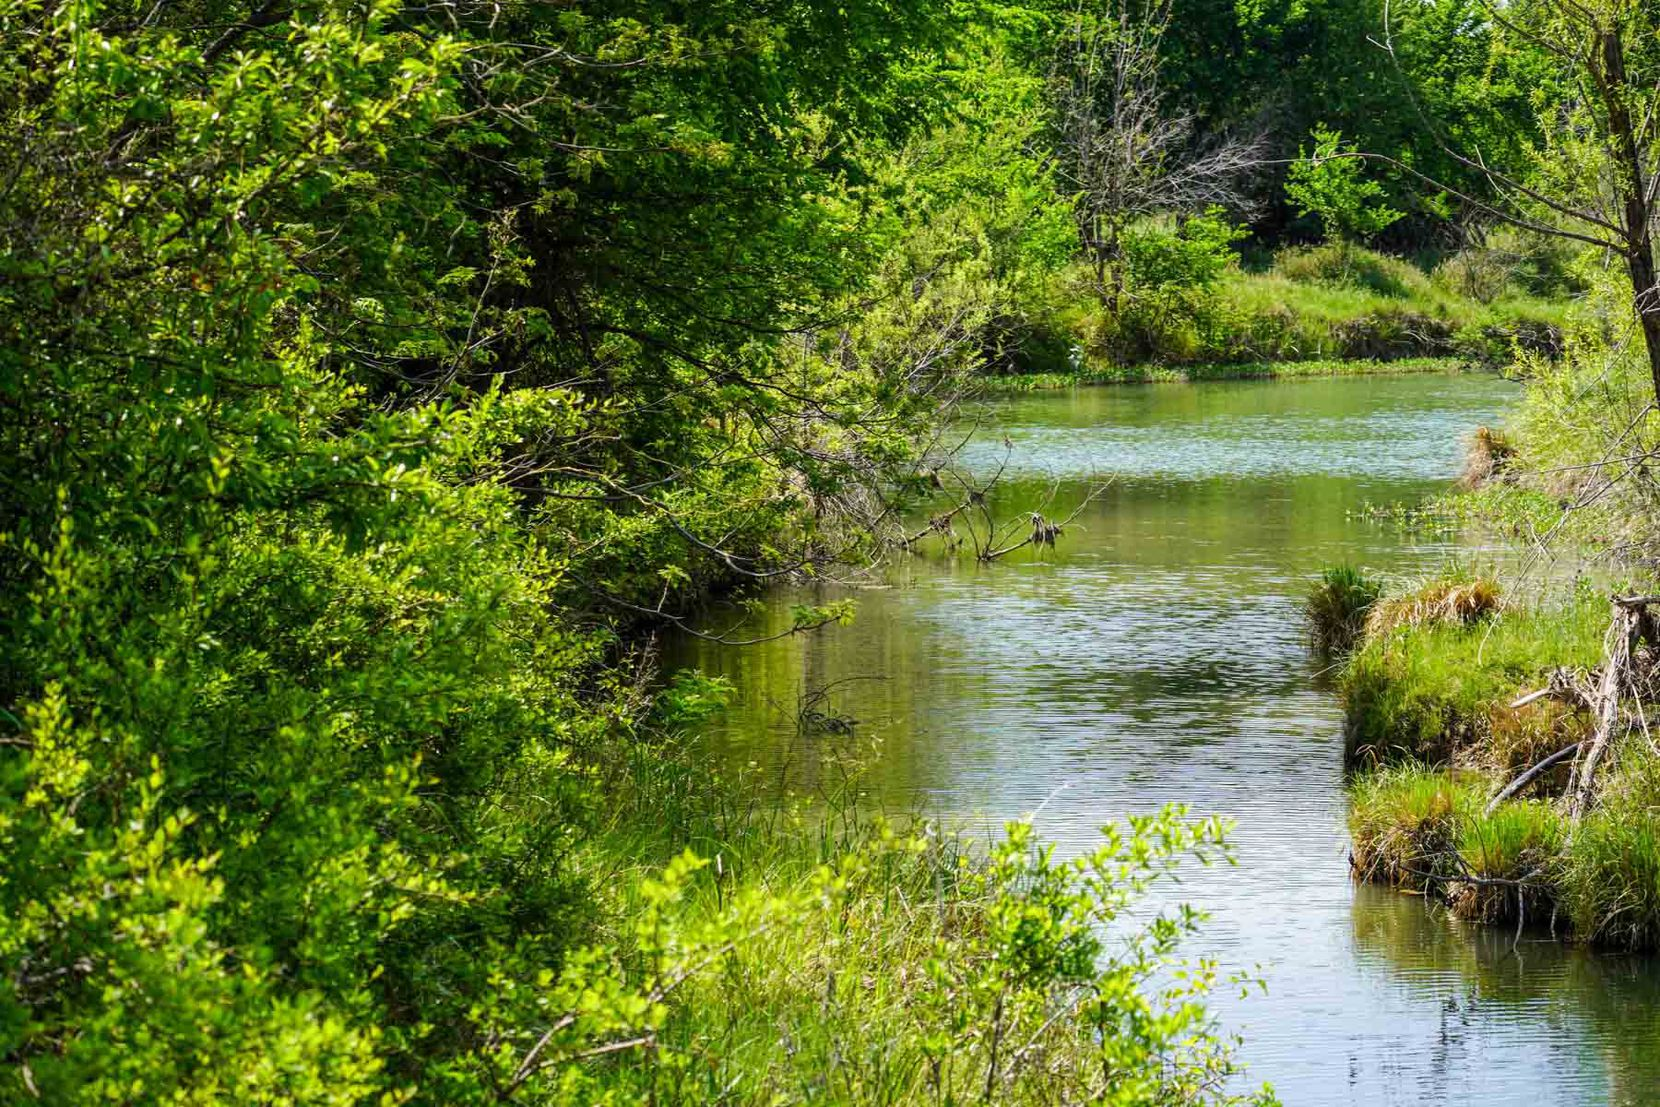 The ranch includes miles of frontage on the Clear Fork of the Brazos River.